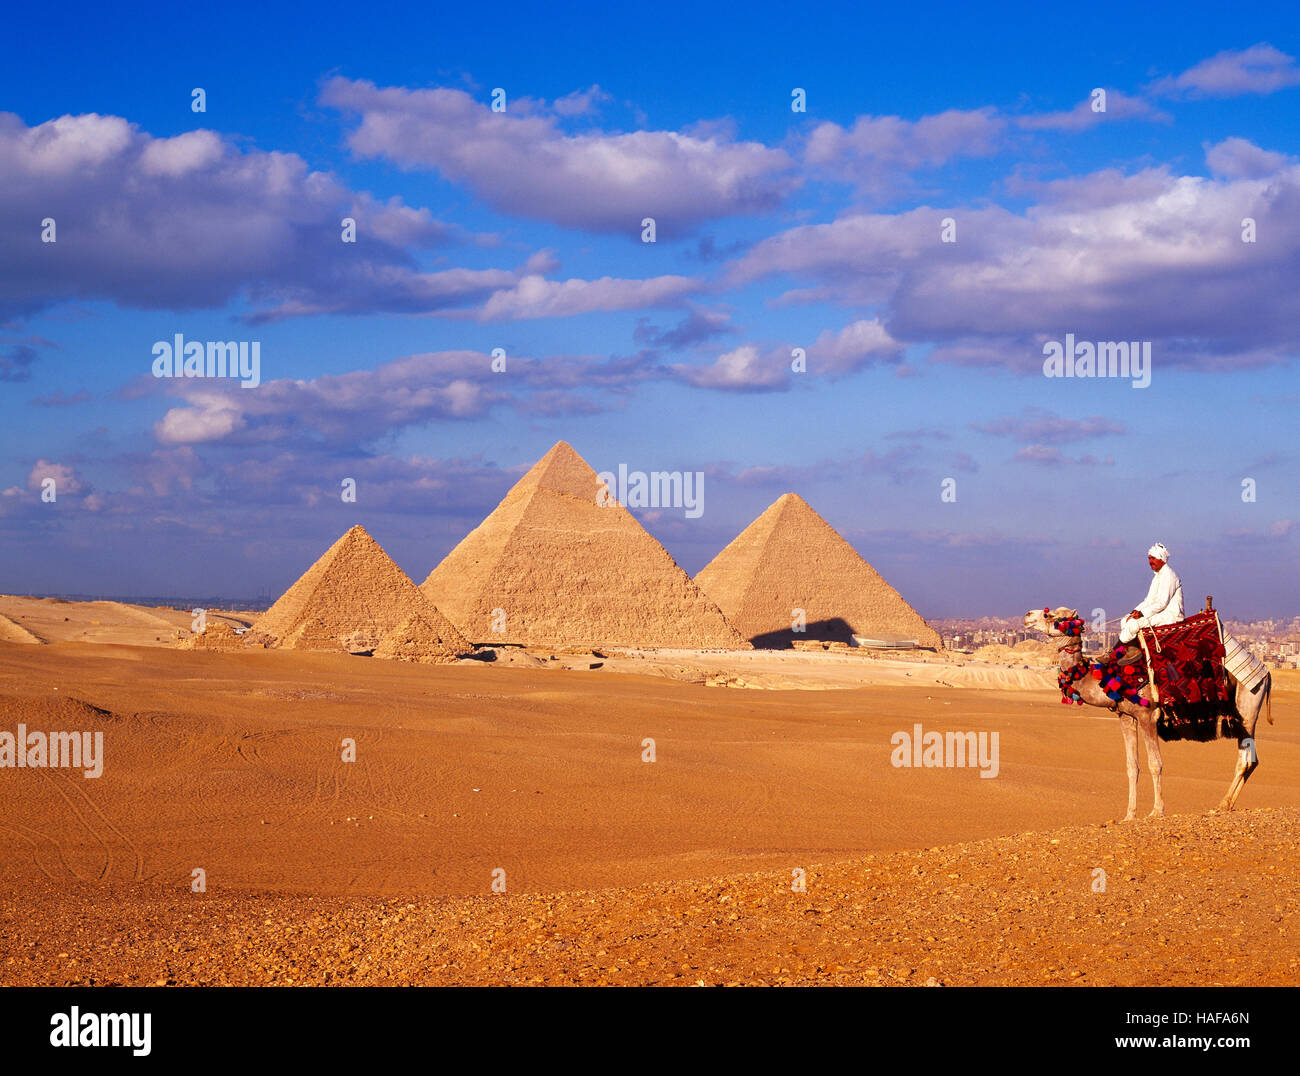 Pyramids and Camel rider, Giza , Cairo, Egypt. Stock Photo